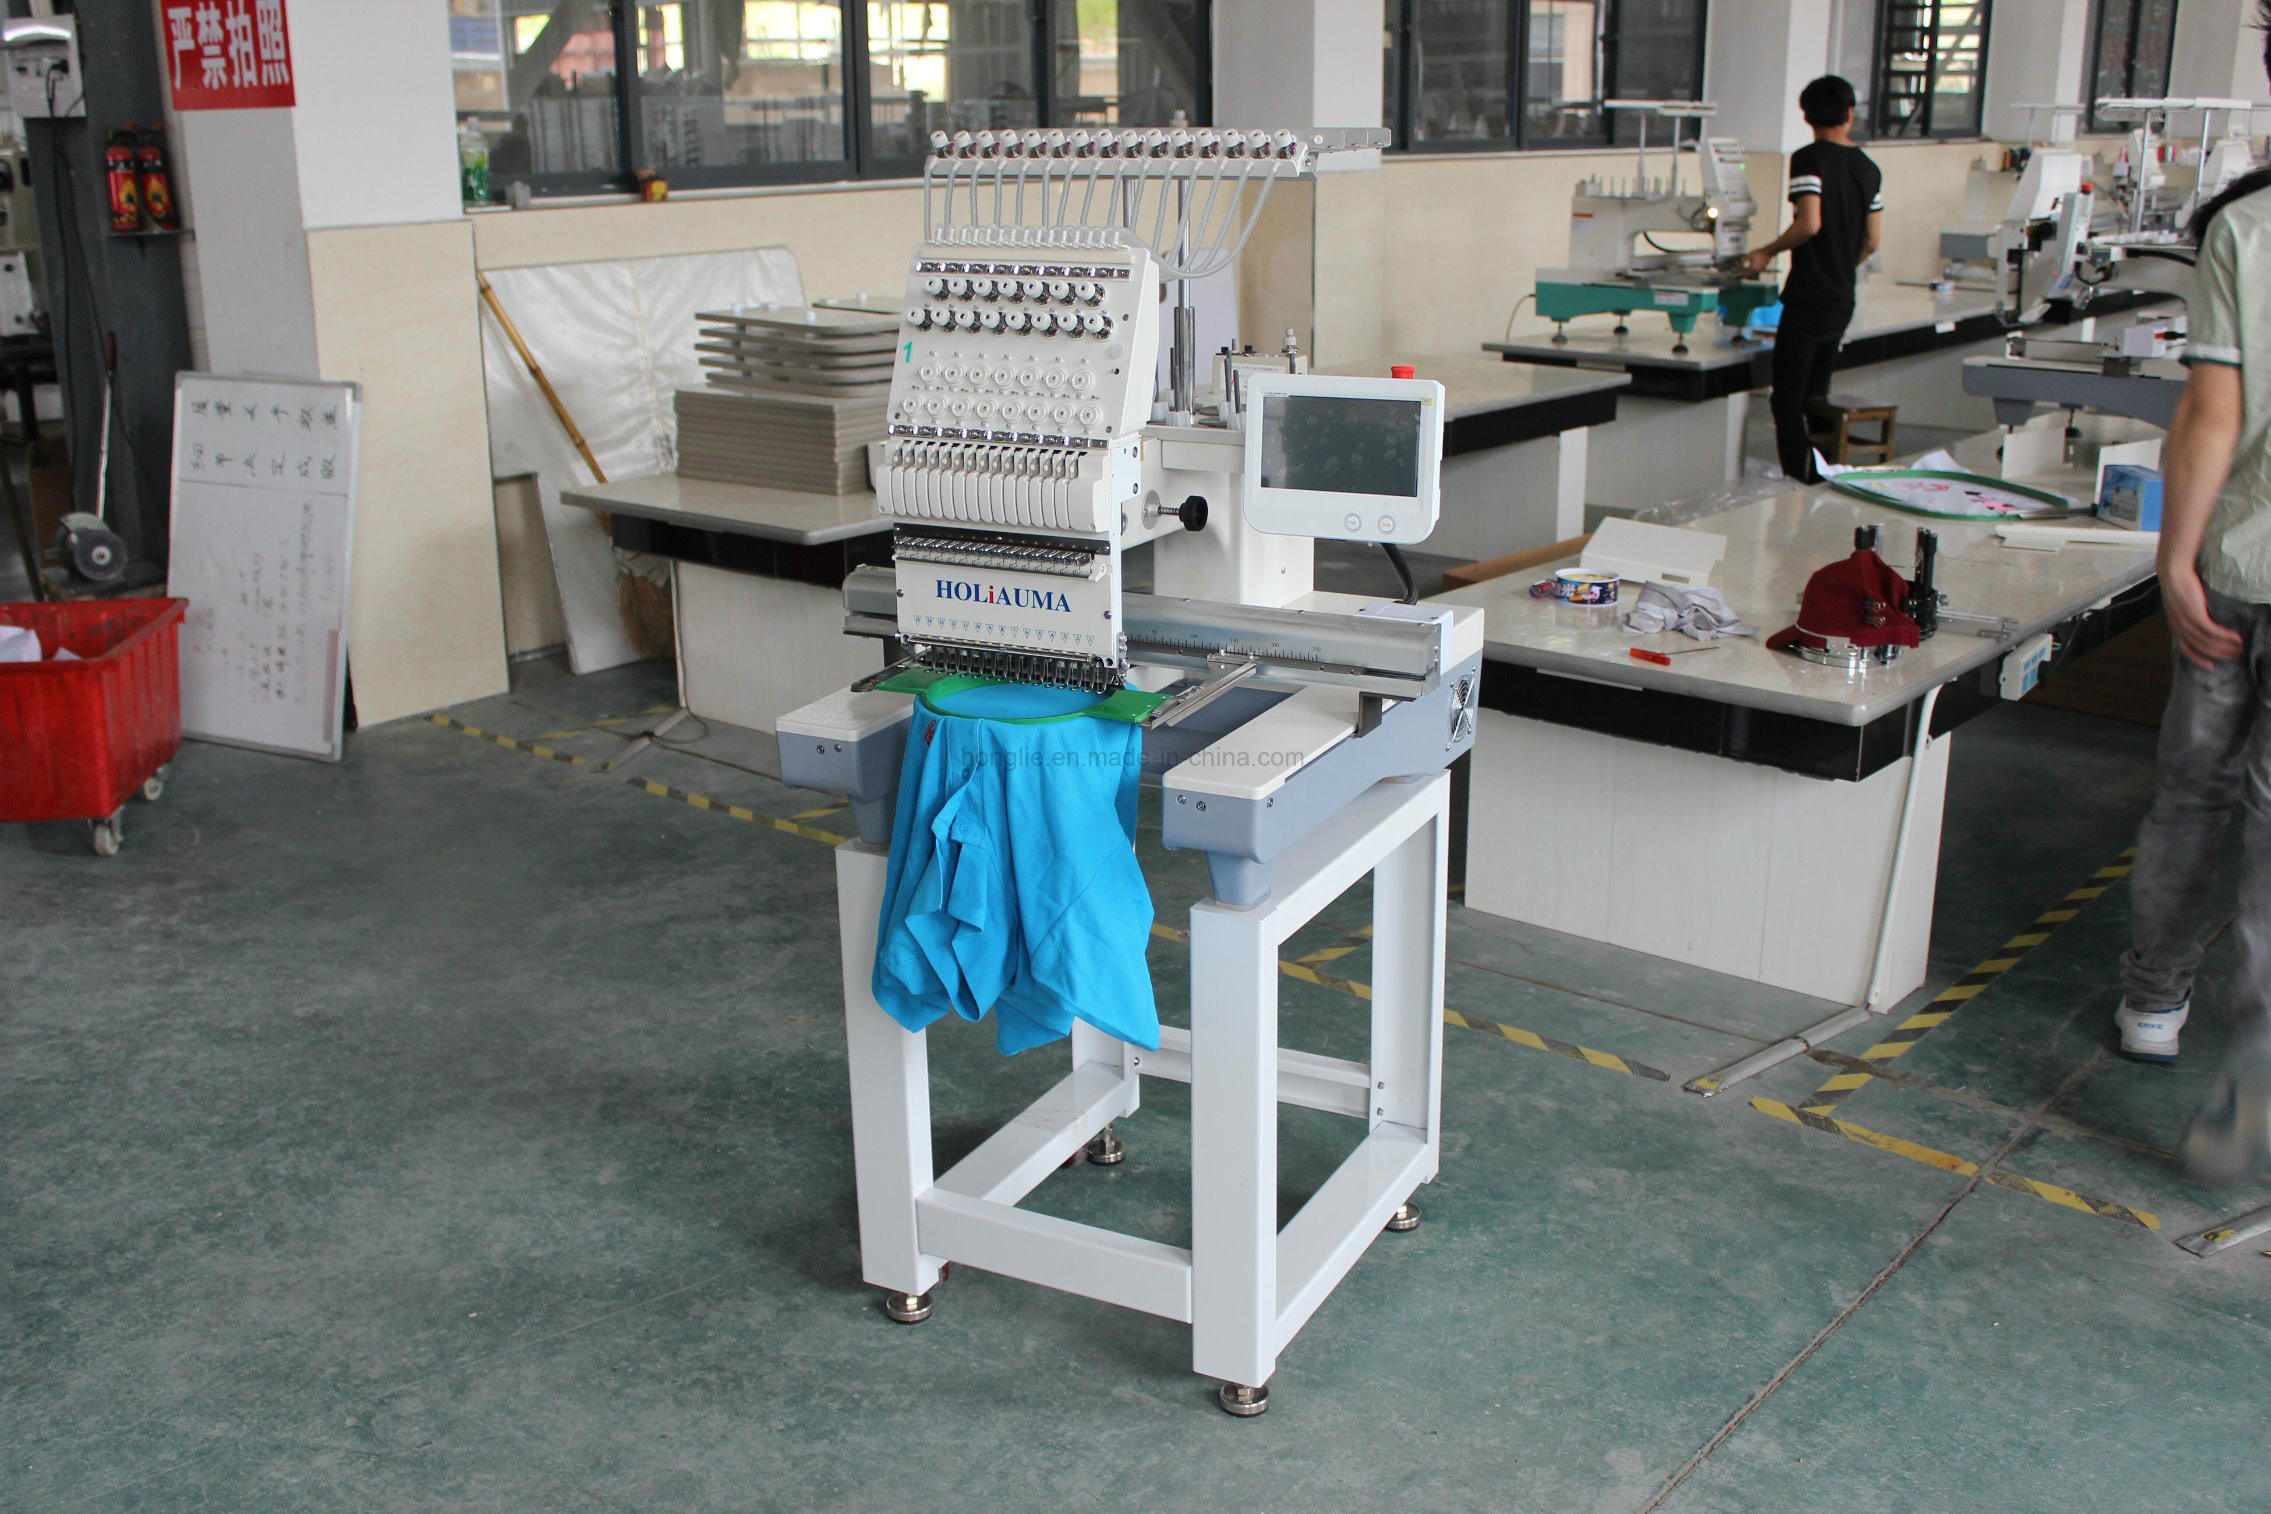 Holiauma Hot Selling Ho1501c 1 Head Computerized Swf Embroidery Machine Prices with High Quality Using for Embroidery Sewing Machine